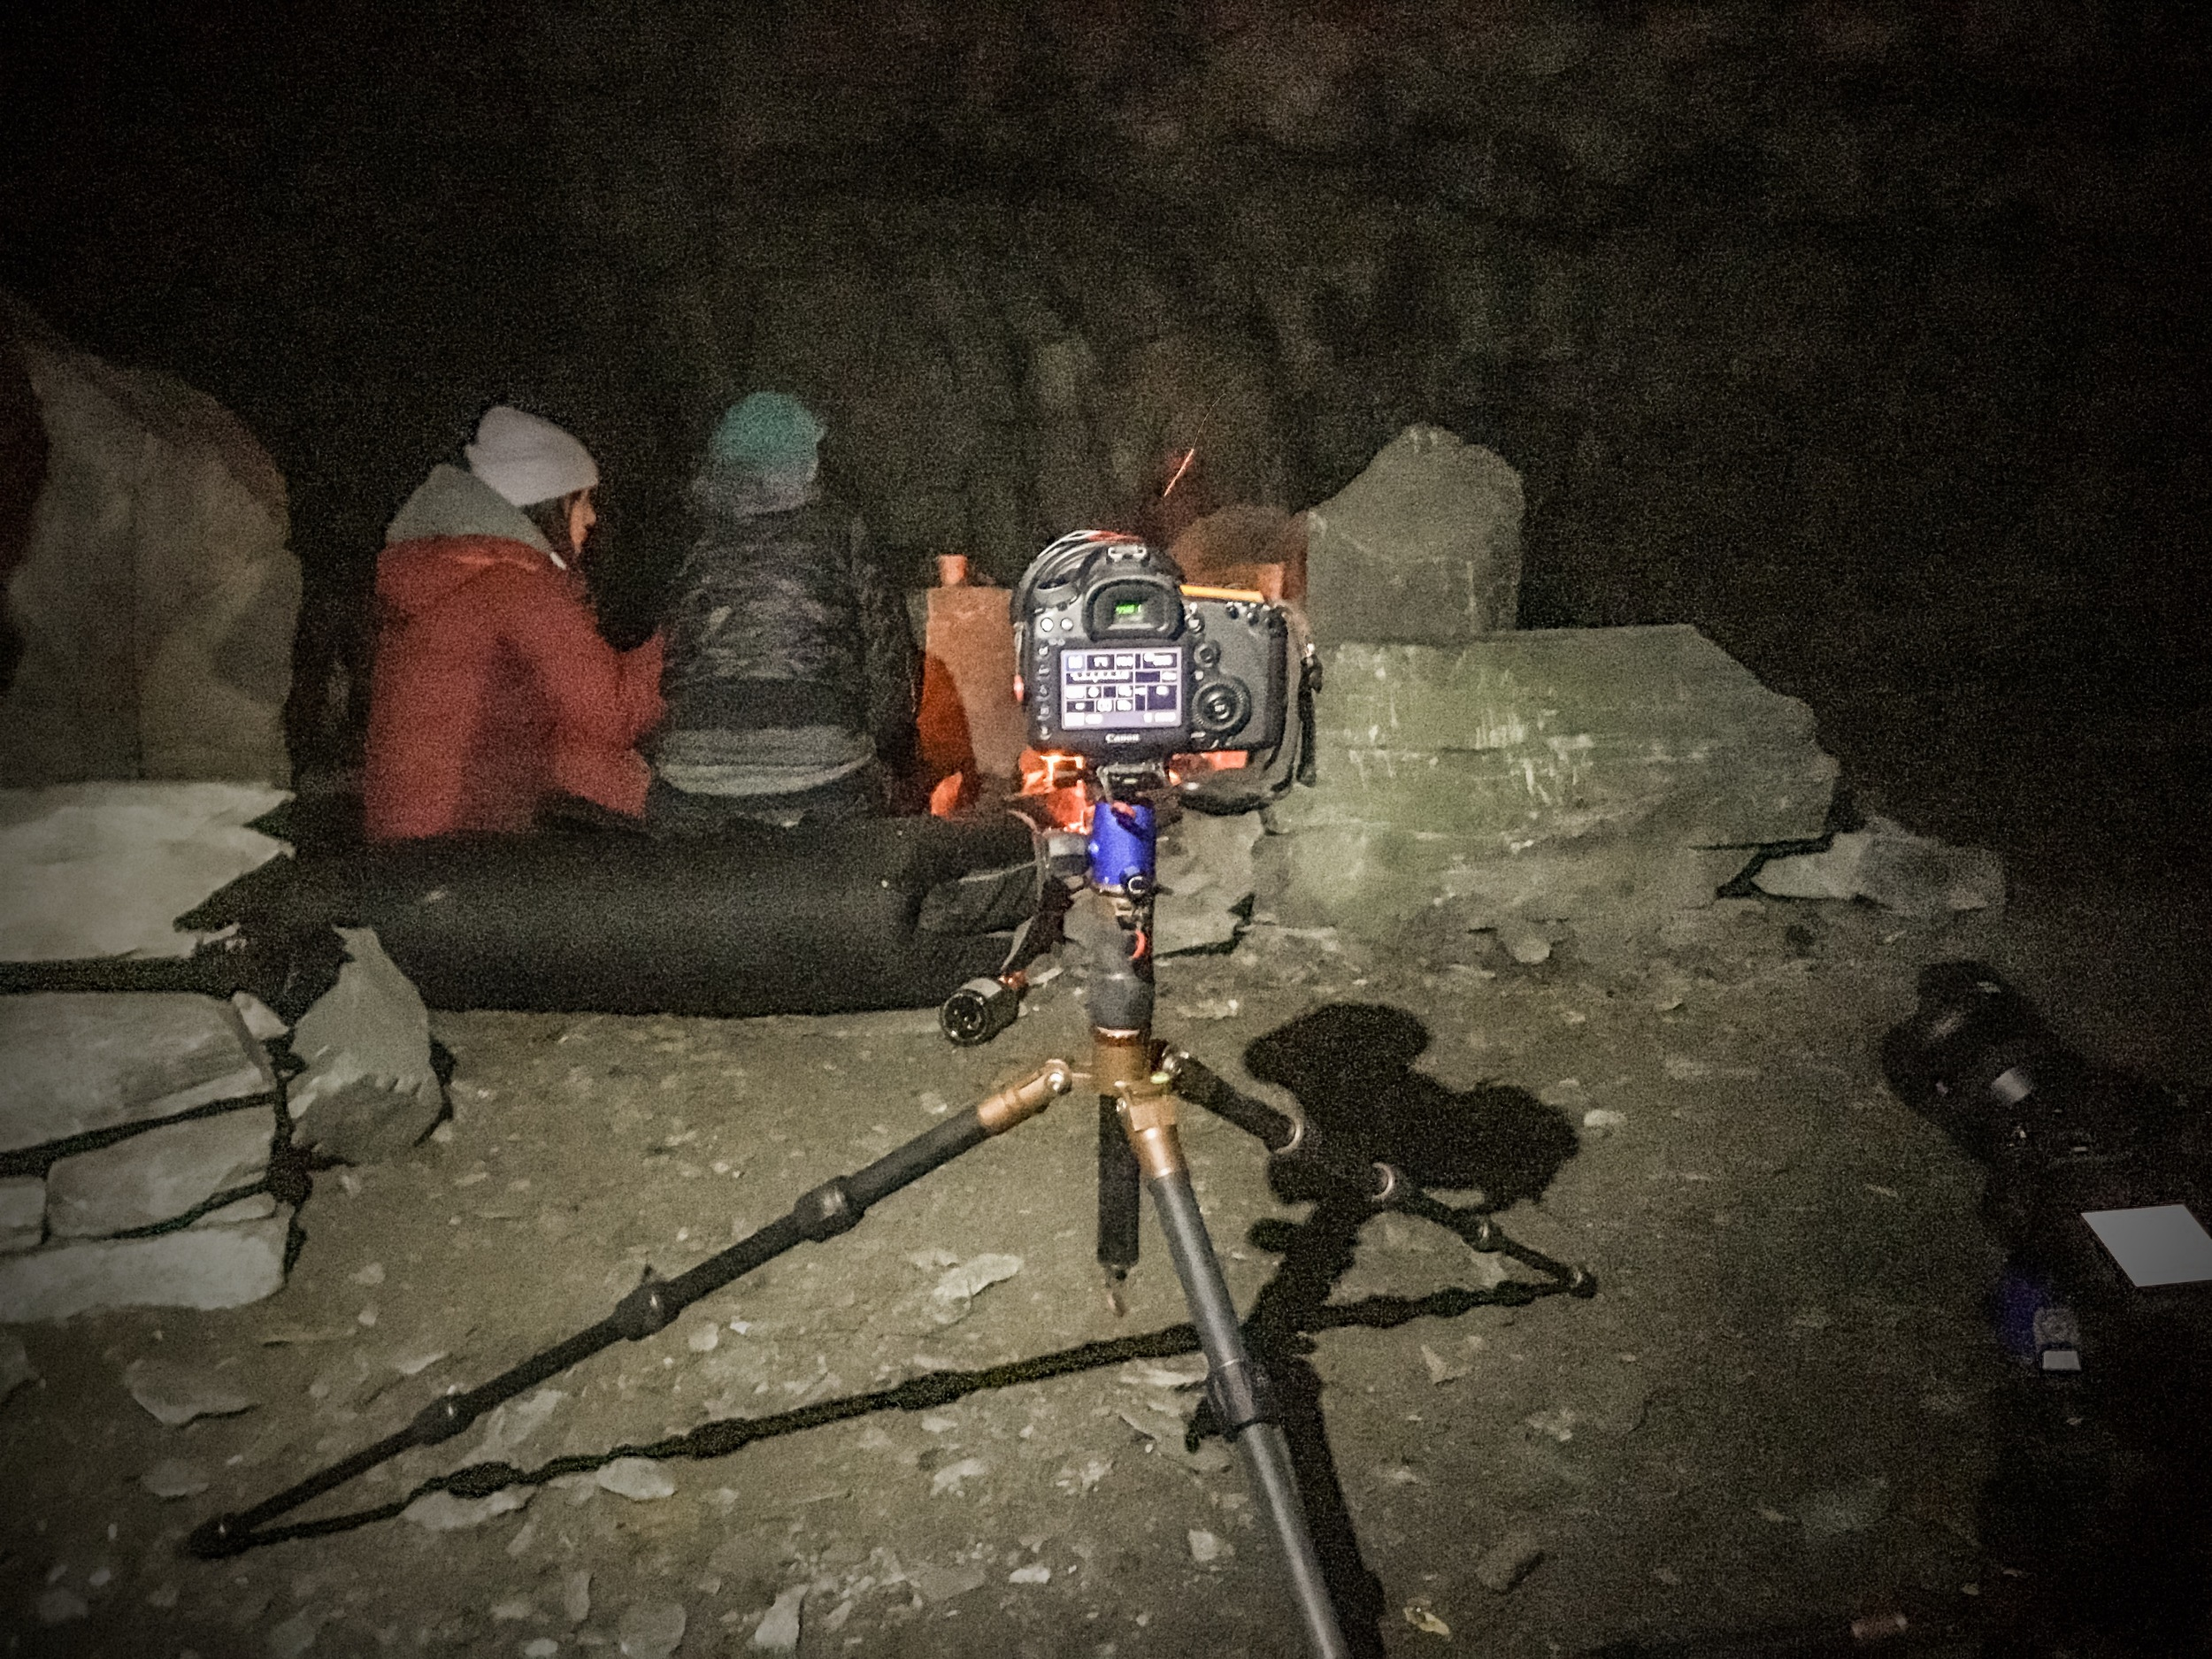 Little Langdale: Night photography + in a cave = EXTRA DARK